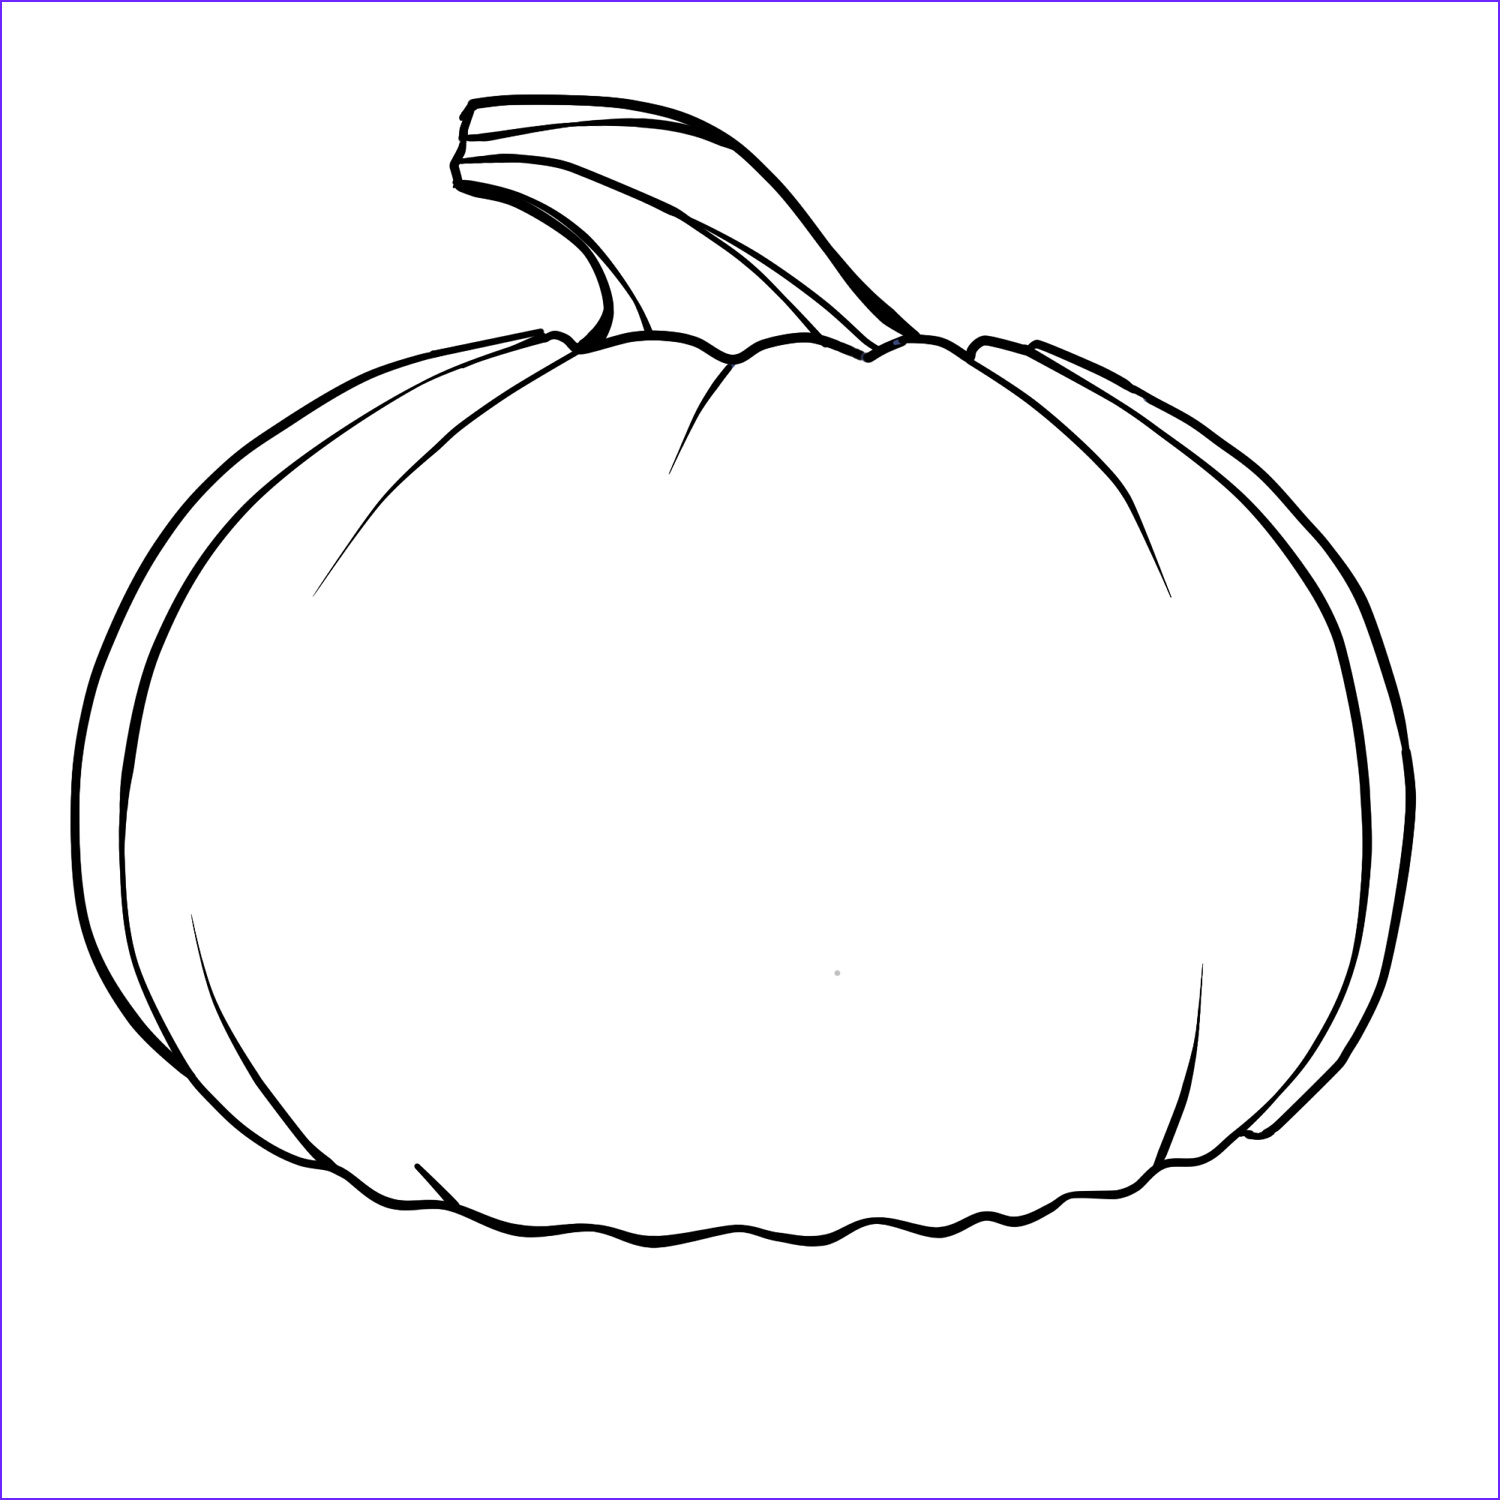 Coloring Pumpkins Beautiful Collection Free Printable Pumpkin Coloring Pages for Kids